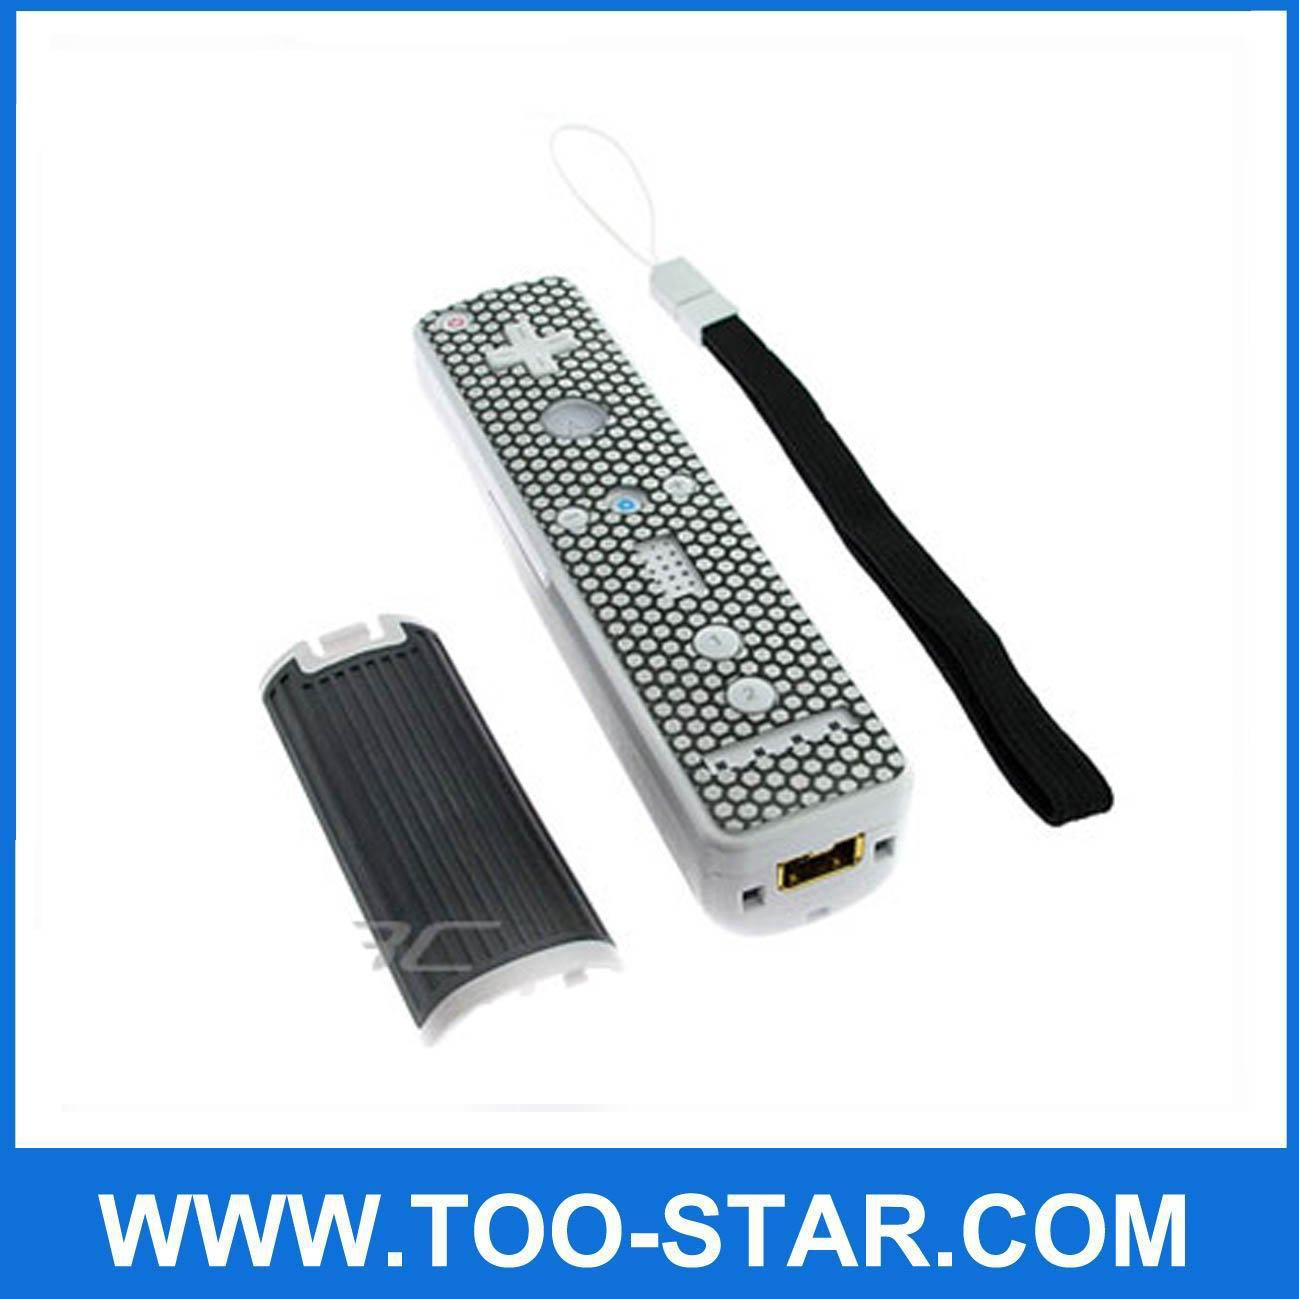 Remote Controller 3-In-1 Slippery Proof Kit for Nintendo Wii